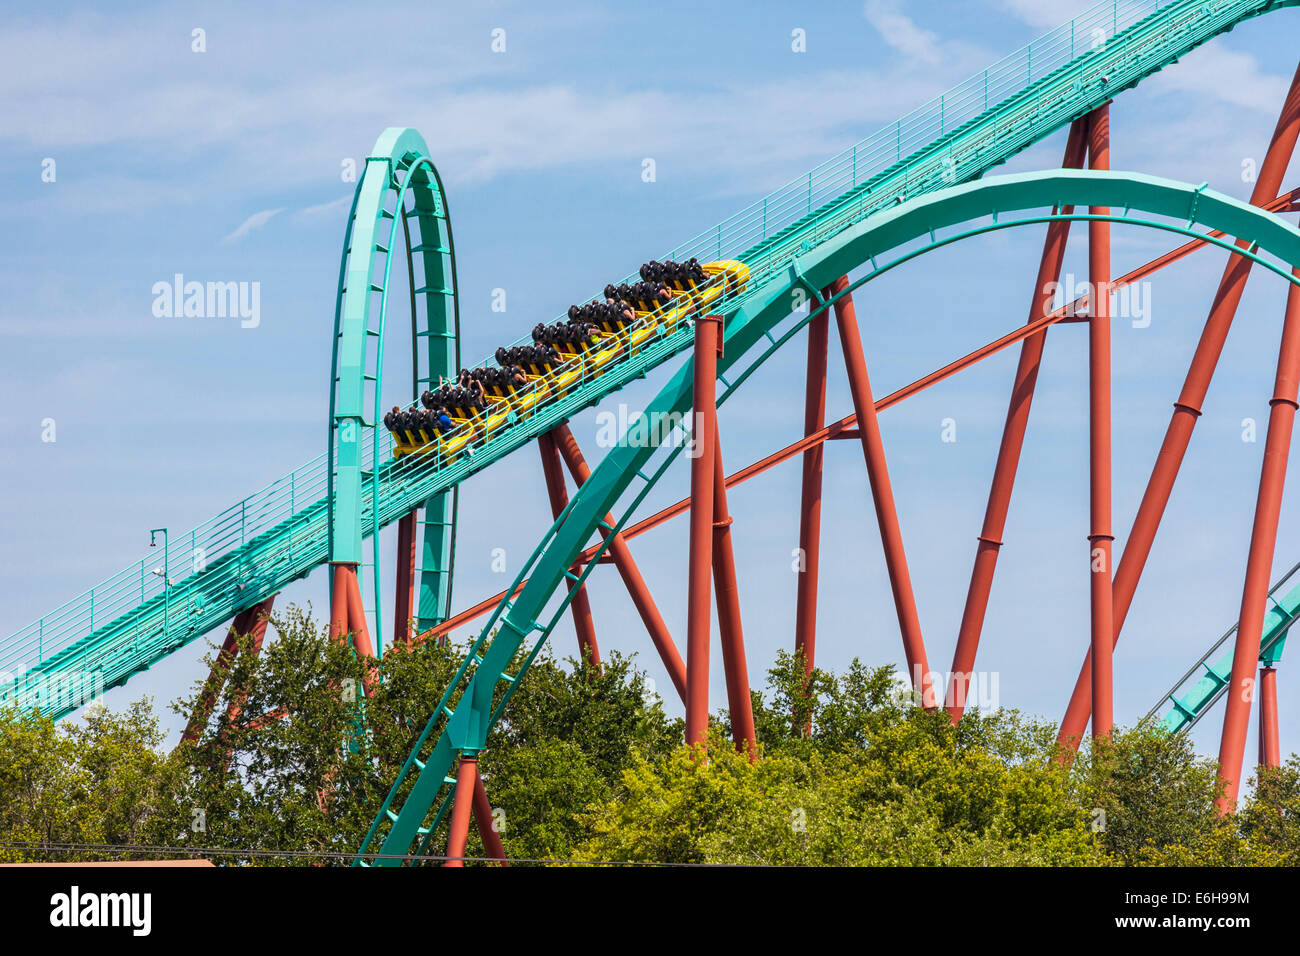 Kumba Roller Coaster At Busch Gardens Theme Park In Tampa Florida Stock Photo Royalty Free